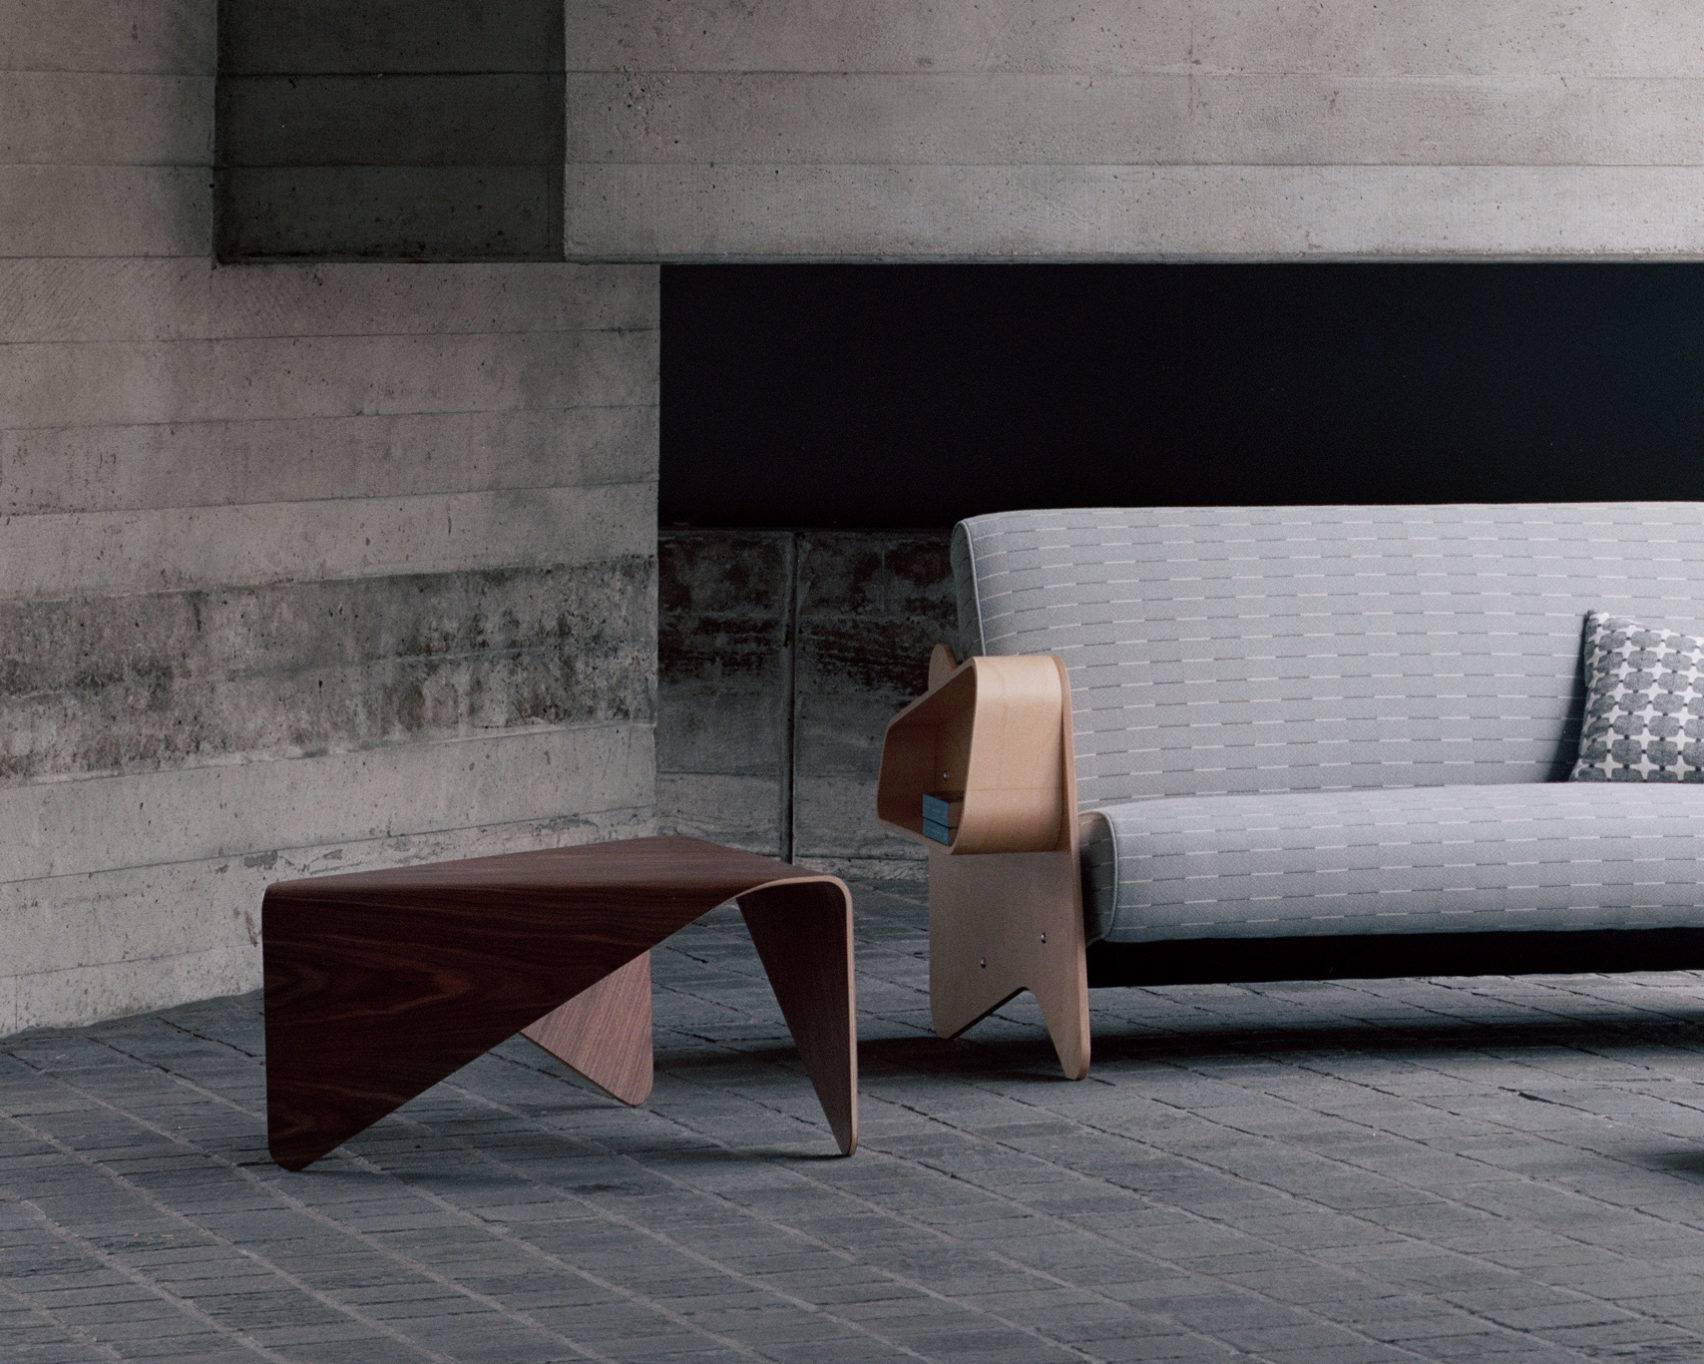 T46 COFFEE TABLE designed by Hein Stolle